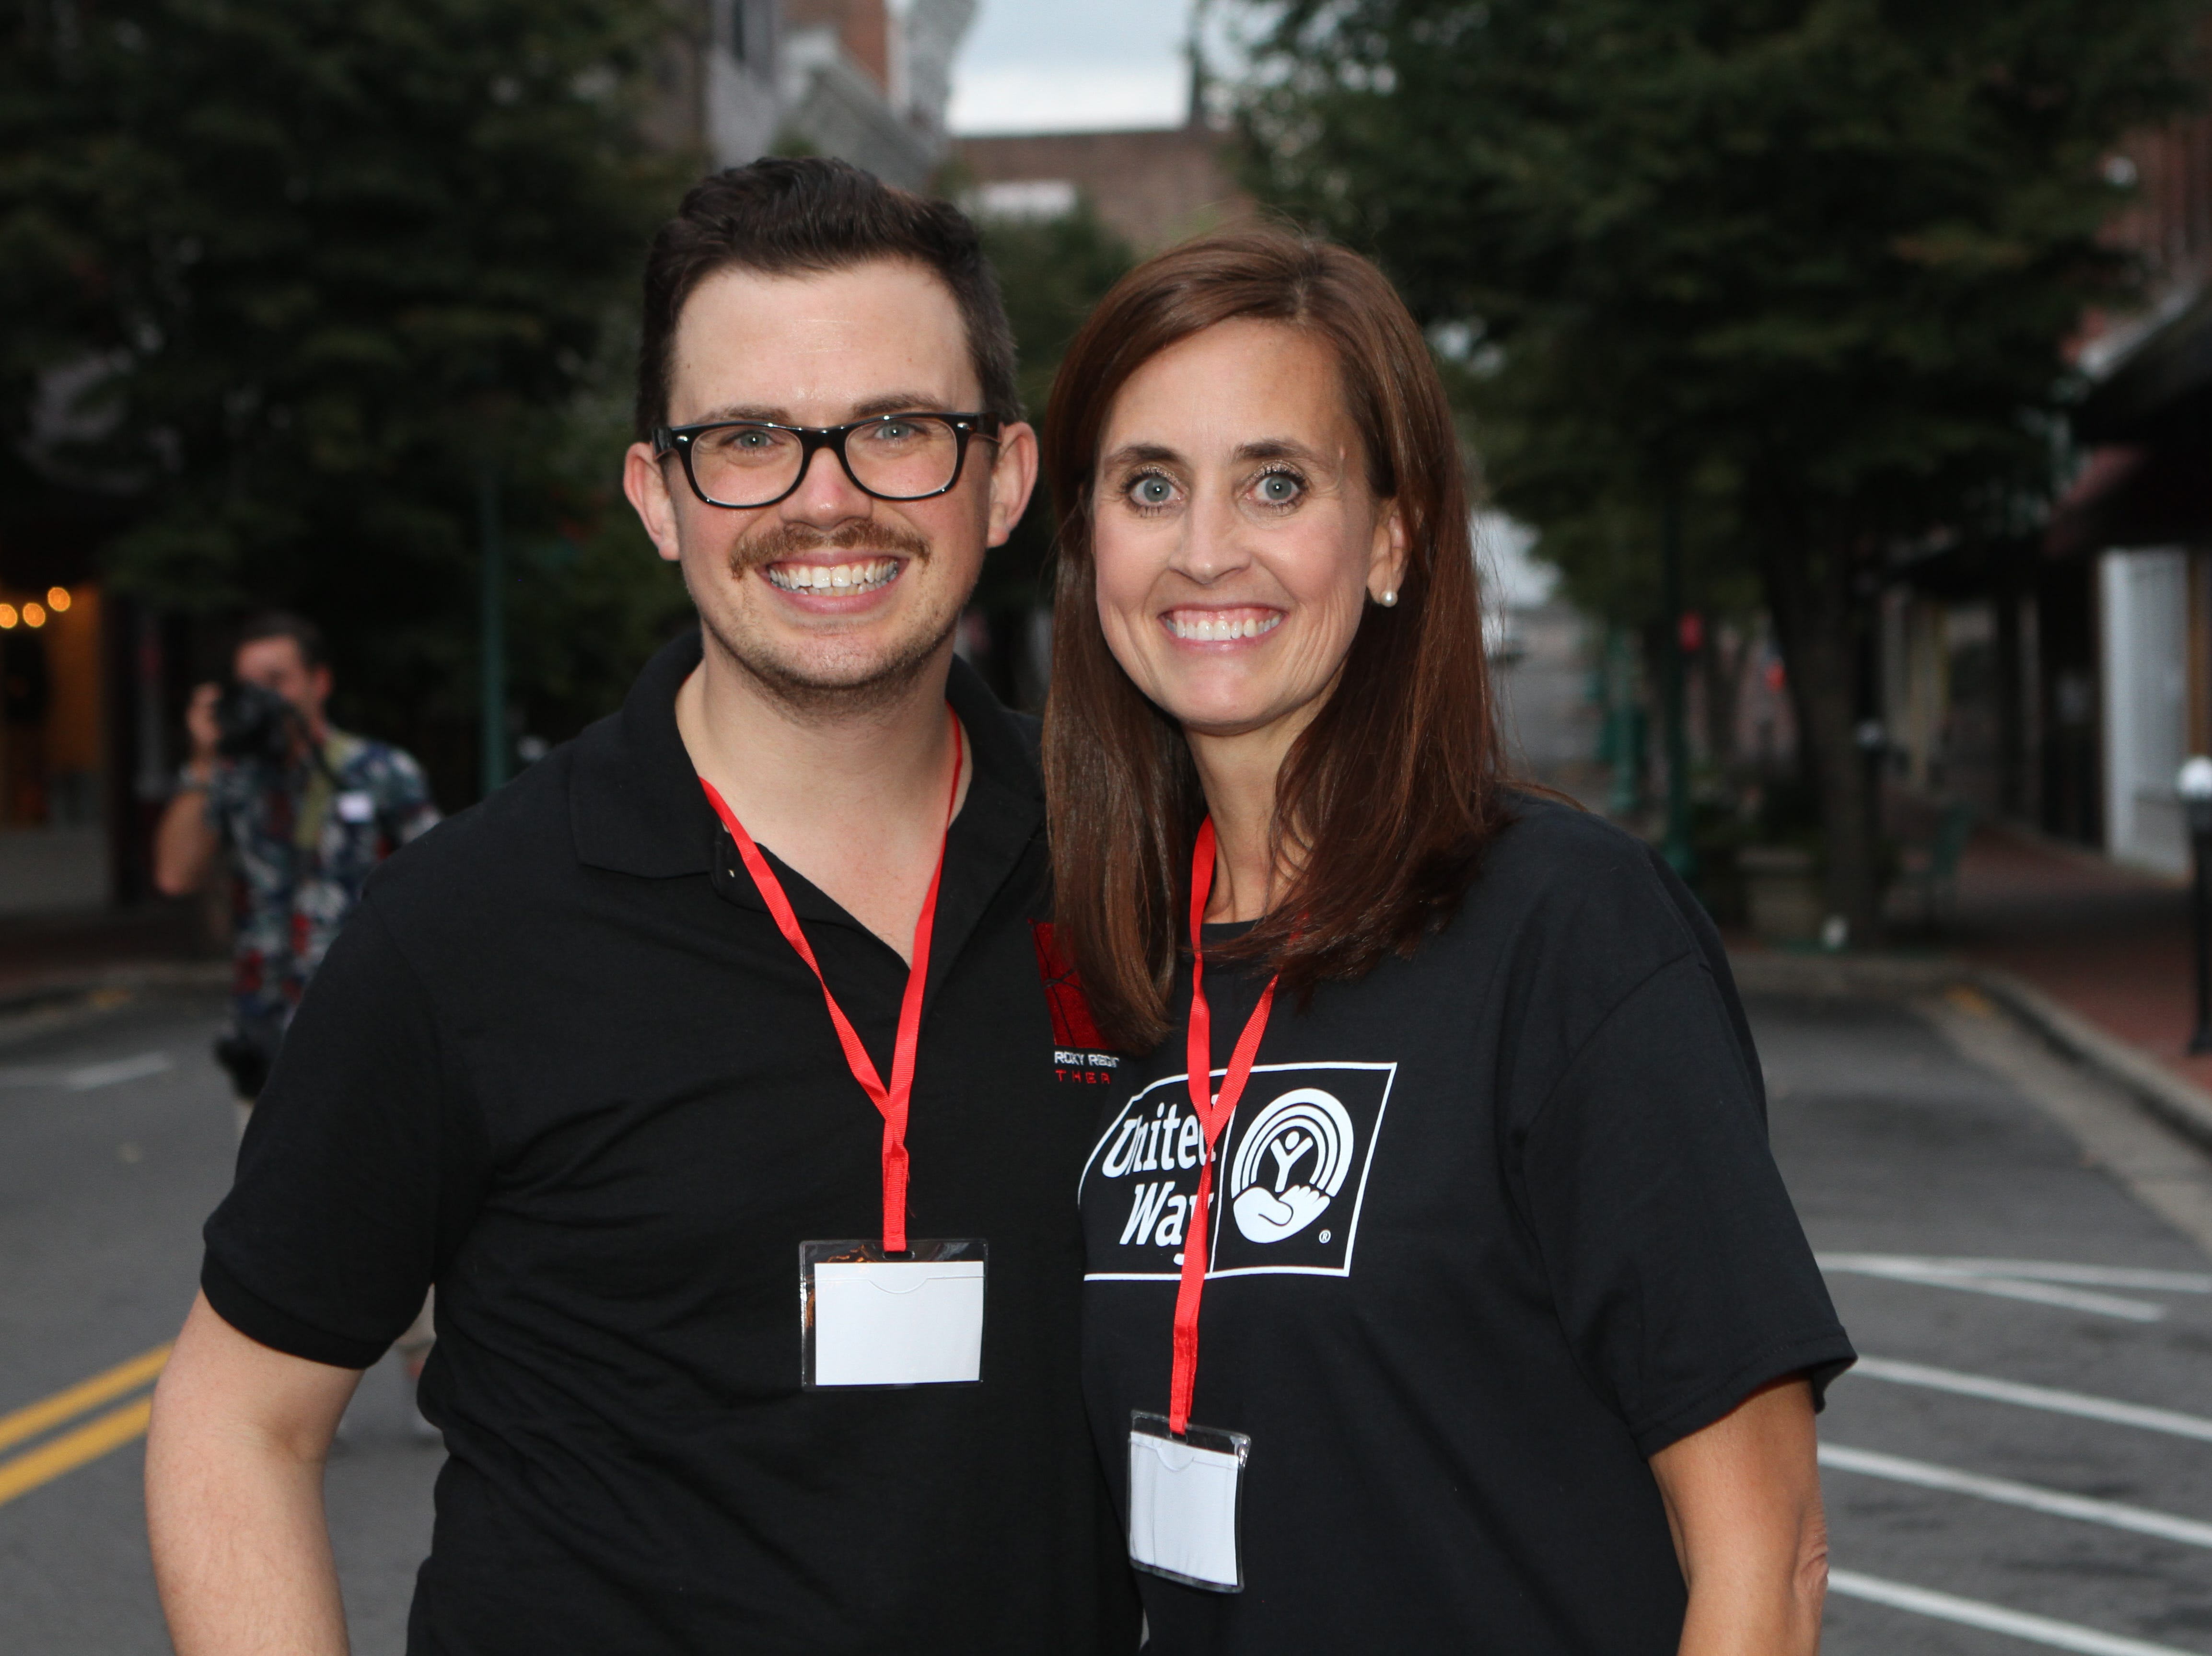 Roxy Regional Theatre's Ryan Bowie and United Way's Ginna Holleman at the Roxy for the United Way 2018 campaign fundraising event Thursday night.